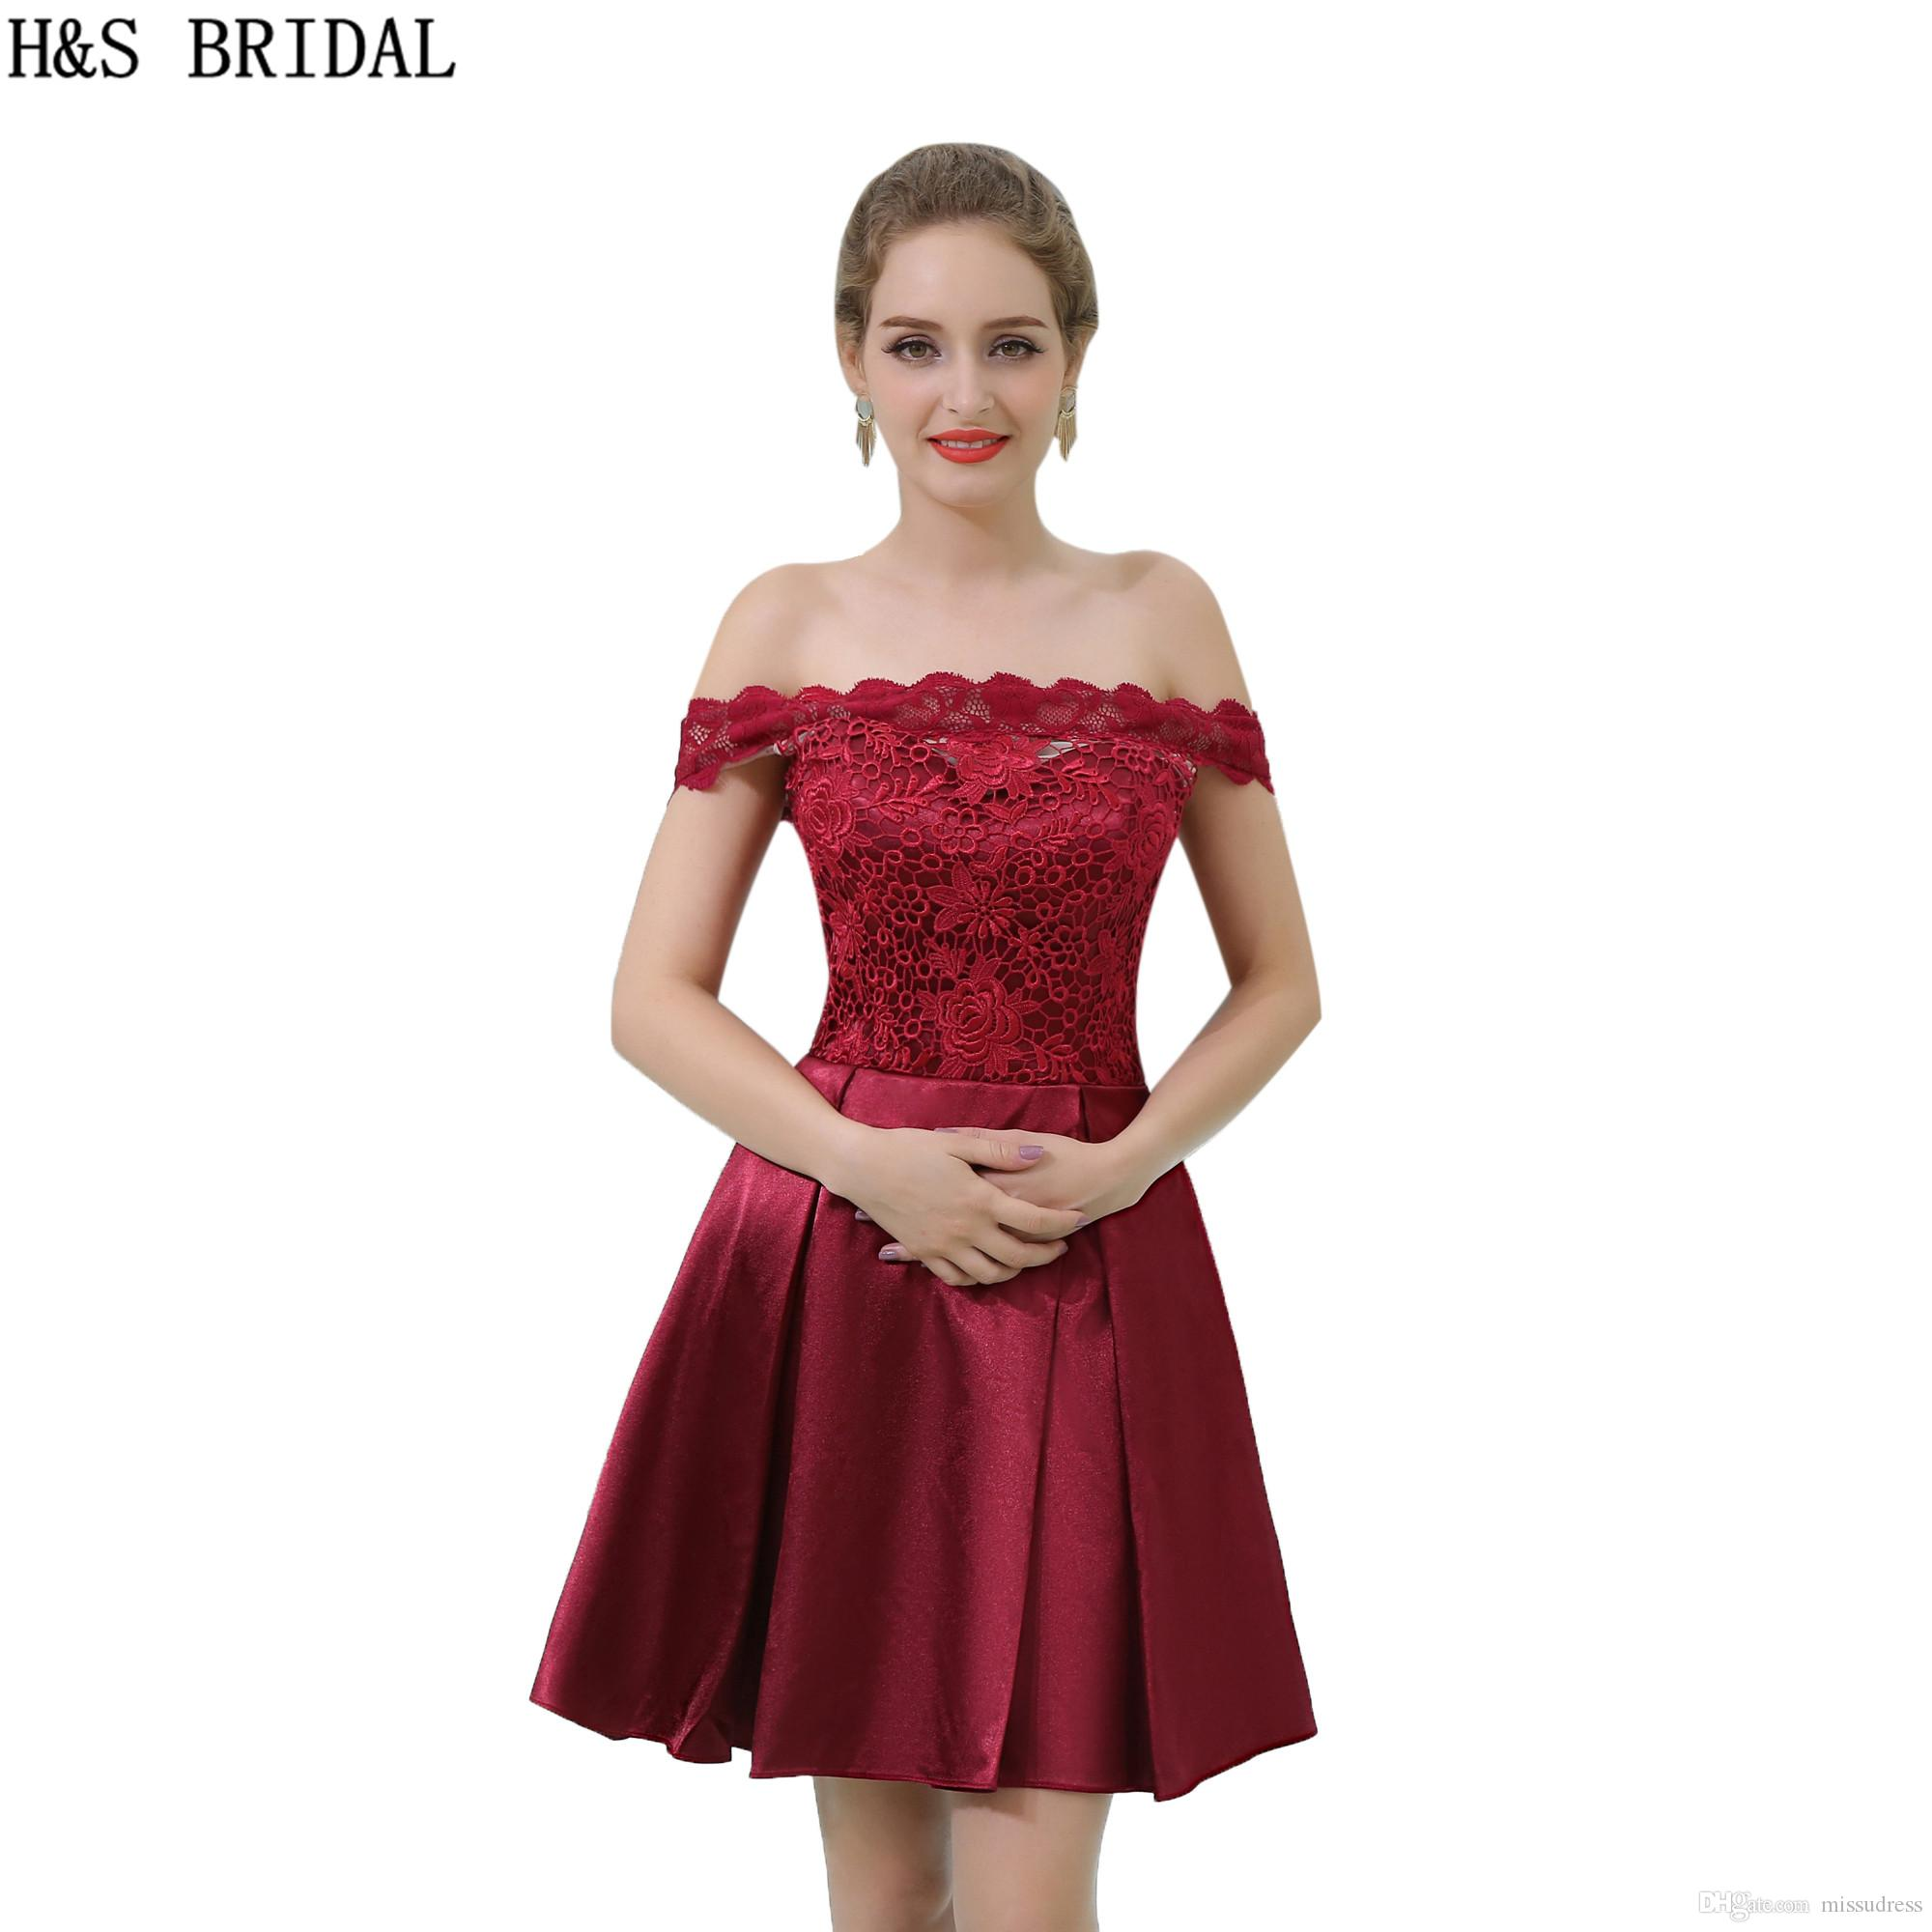 Genuine Real Sample Short Cheap Bridesmaid Dresses Burgundy Lace Off Shoulder Party Gowns 2017 G Bridesmaid Dresses Junior Bridesmaiddresses From Real Sample Short Cheap Bridesmaid Dresses Burgundy La wedding dress Affordable Bridesmaid Dresses